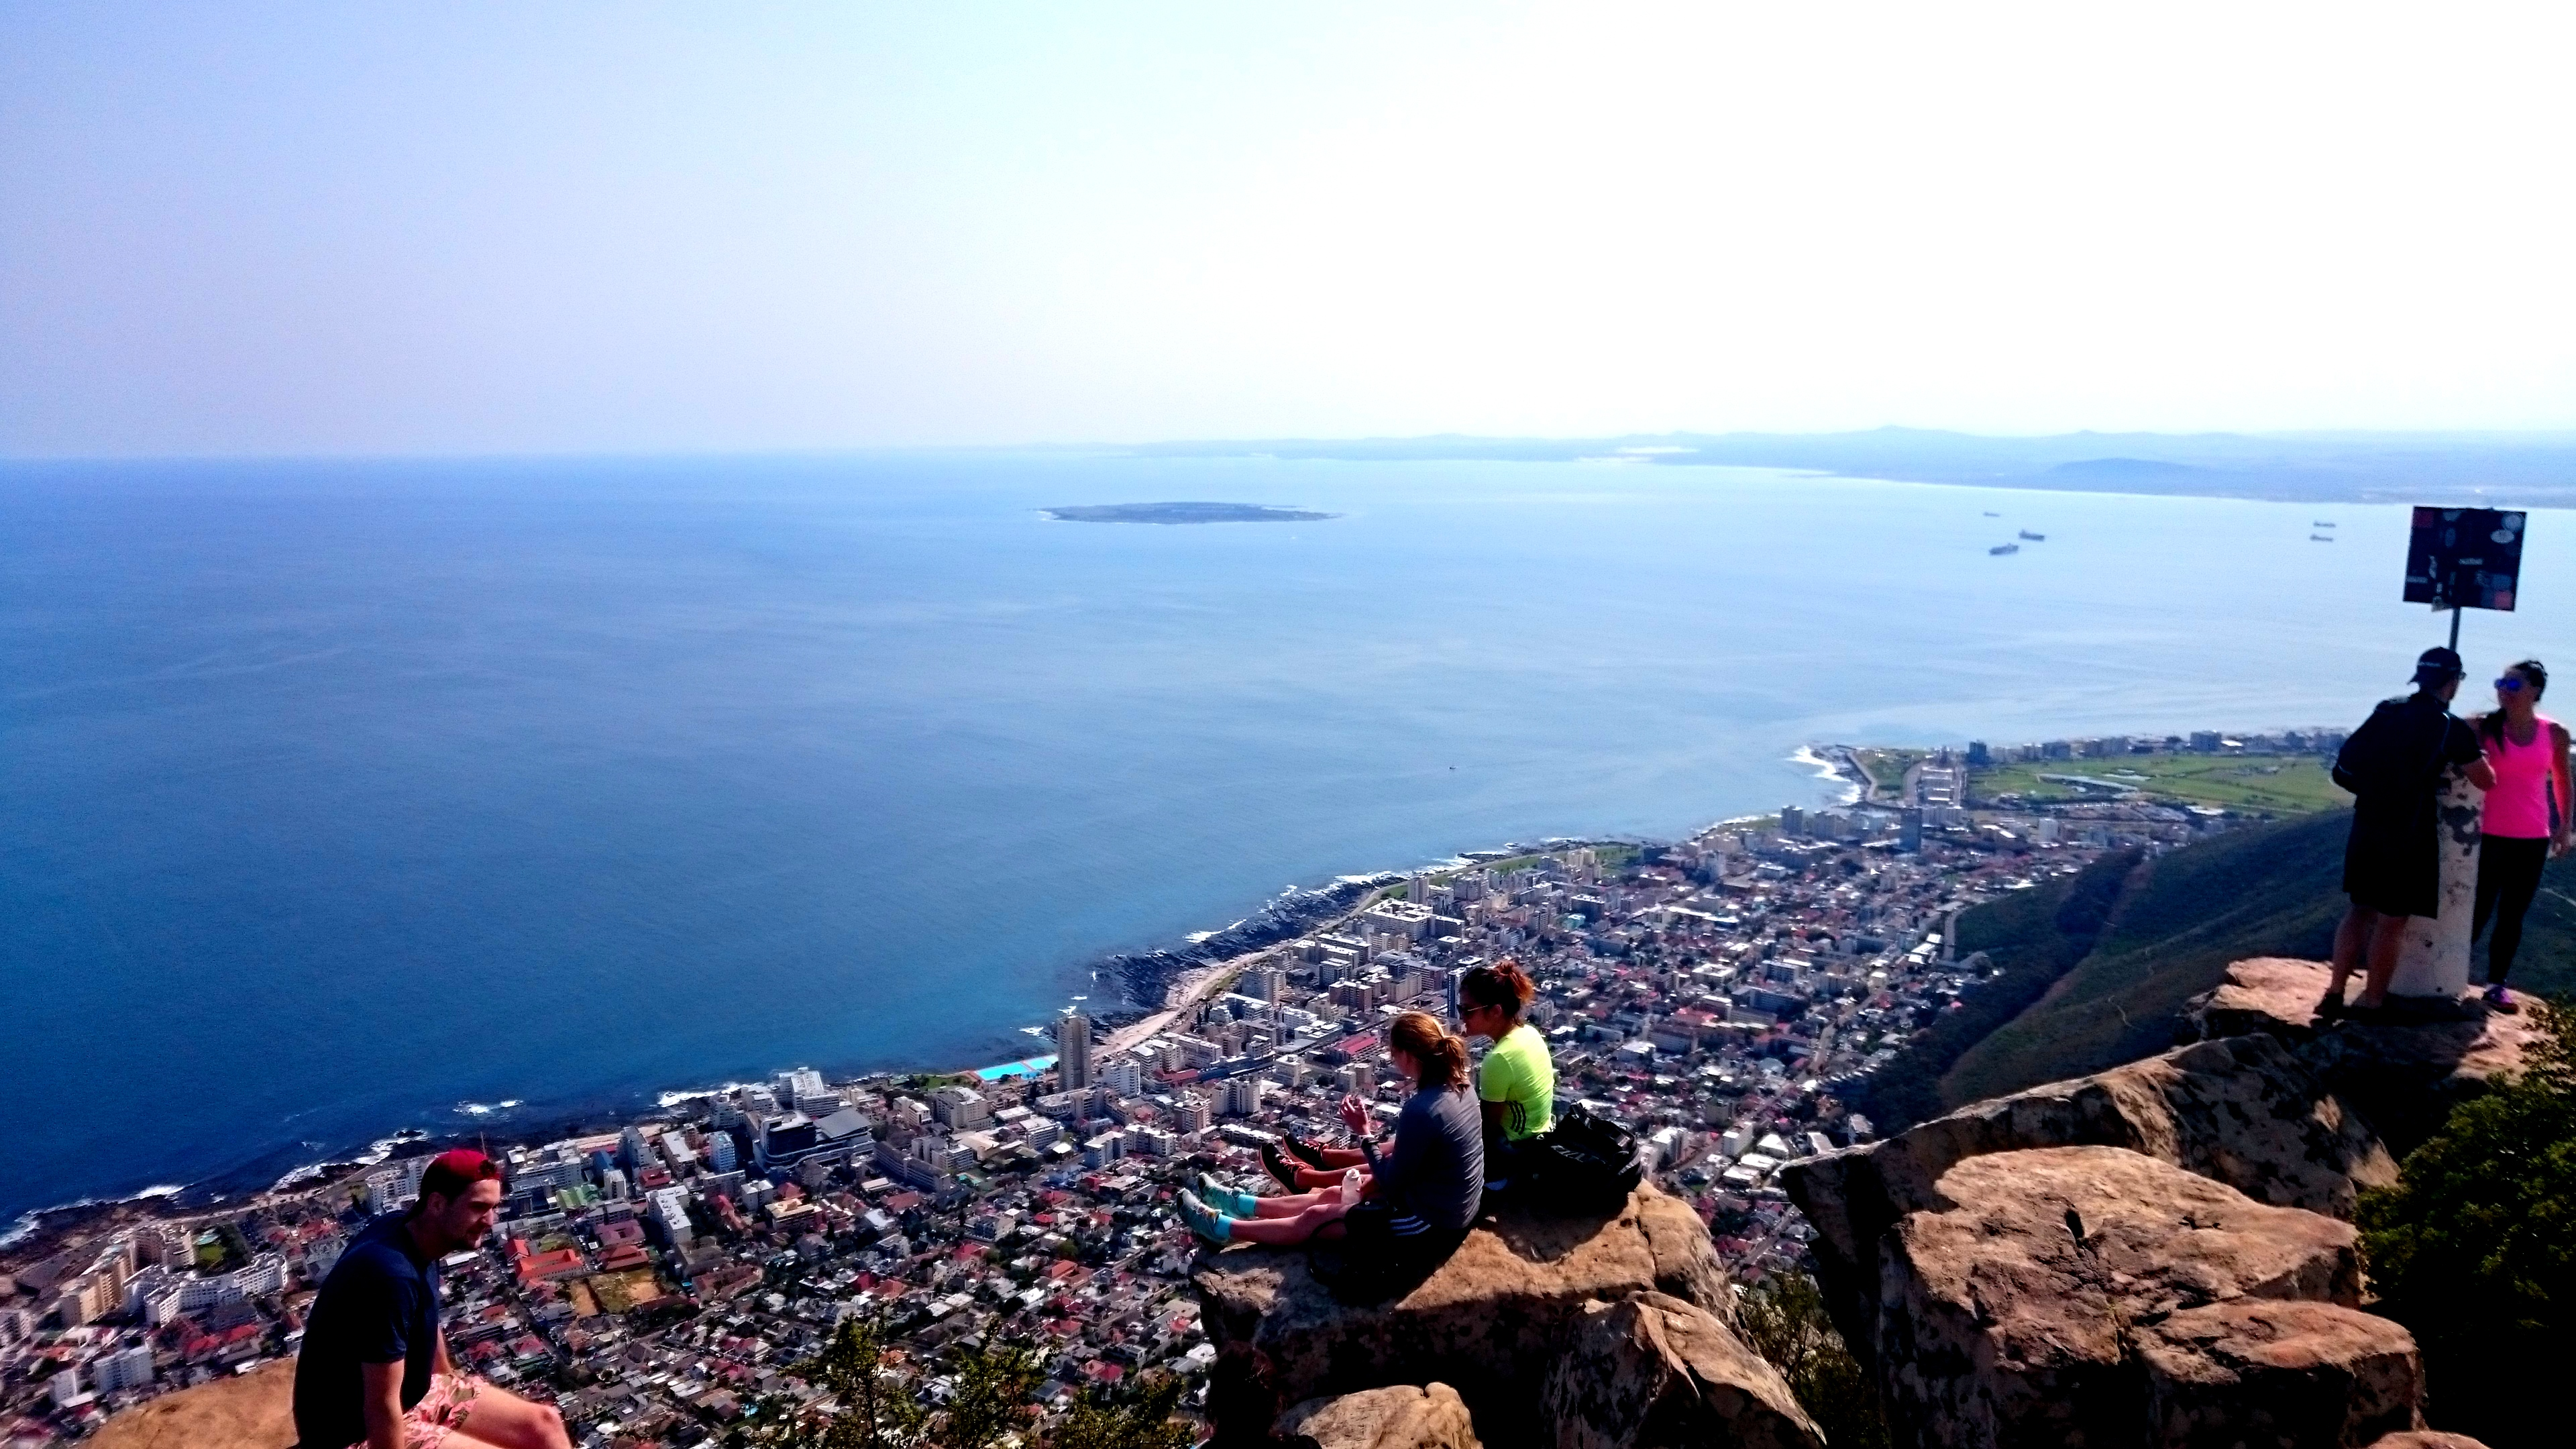 View from the top of Lion's Head. Robben Island spotted in the distance